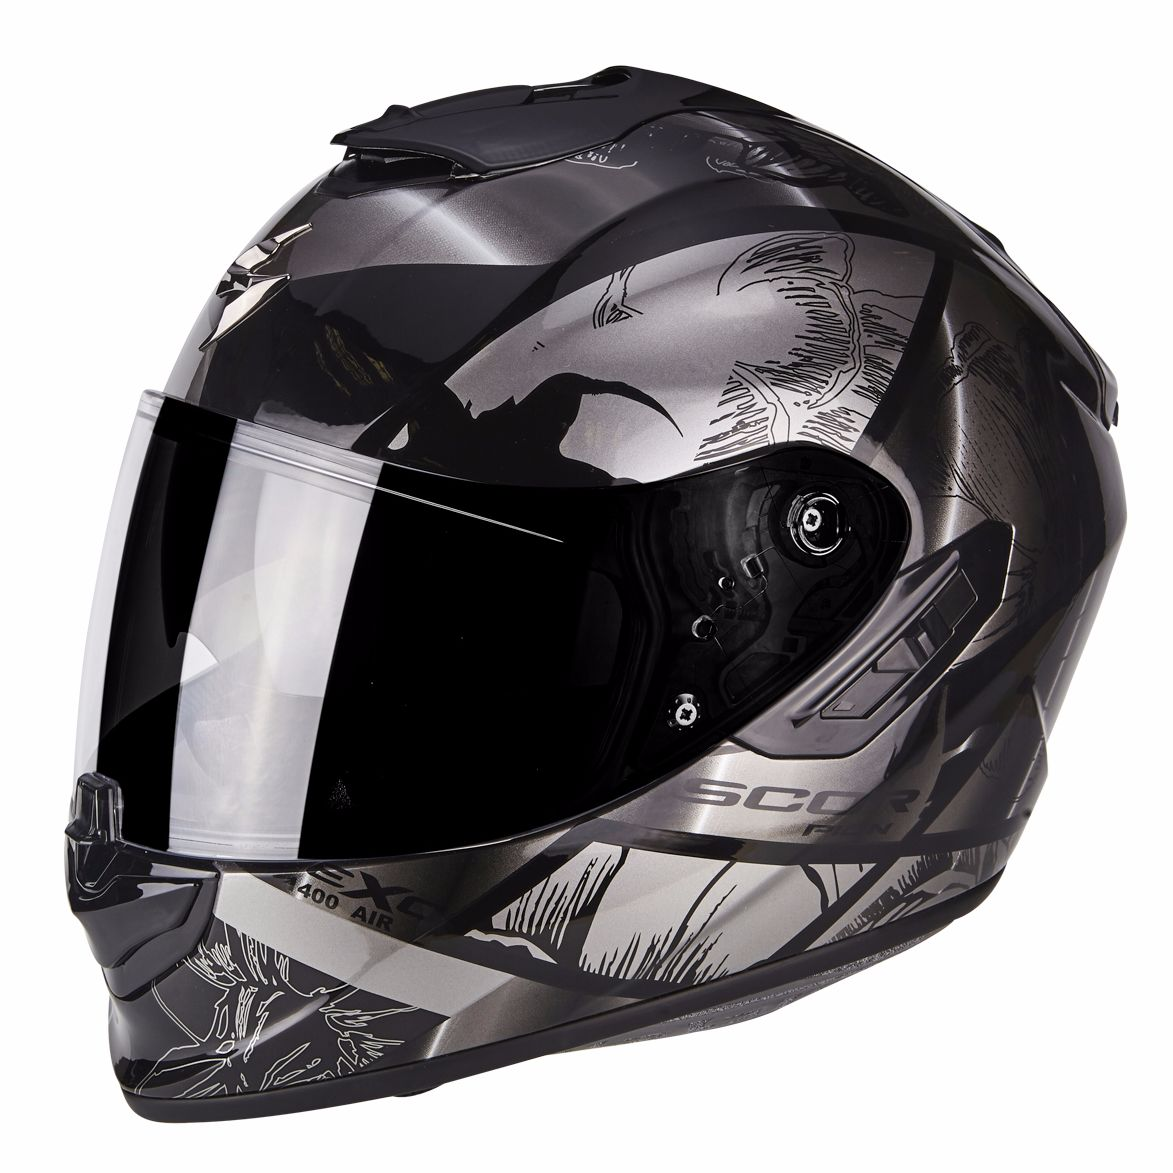 casque scorpion exo 1400 air patch sasie center moto. Black Bedroom Furniture Sets. Home Design Ideas